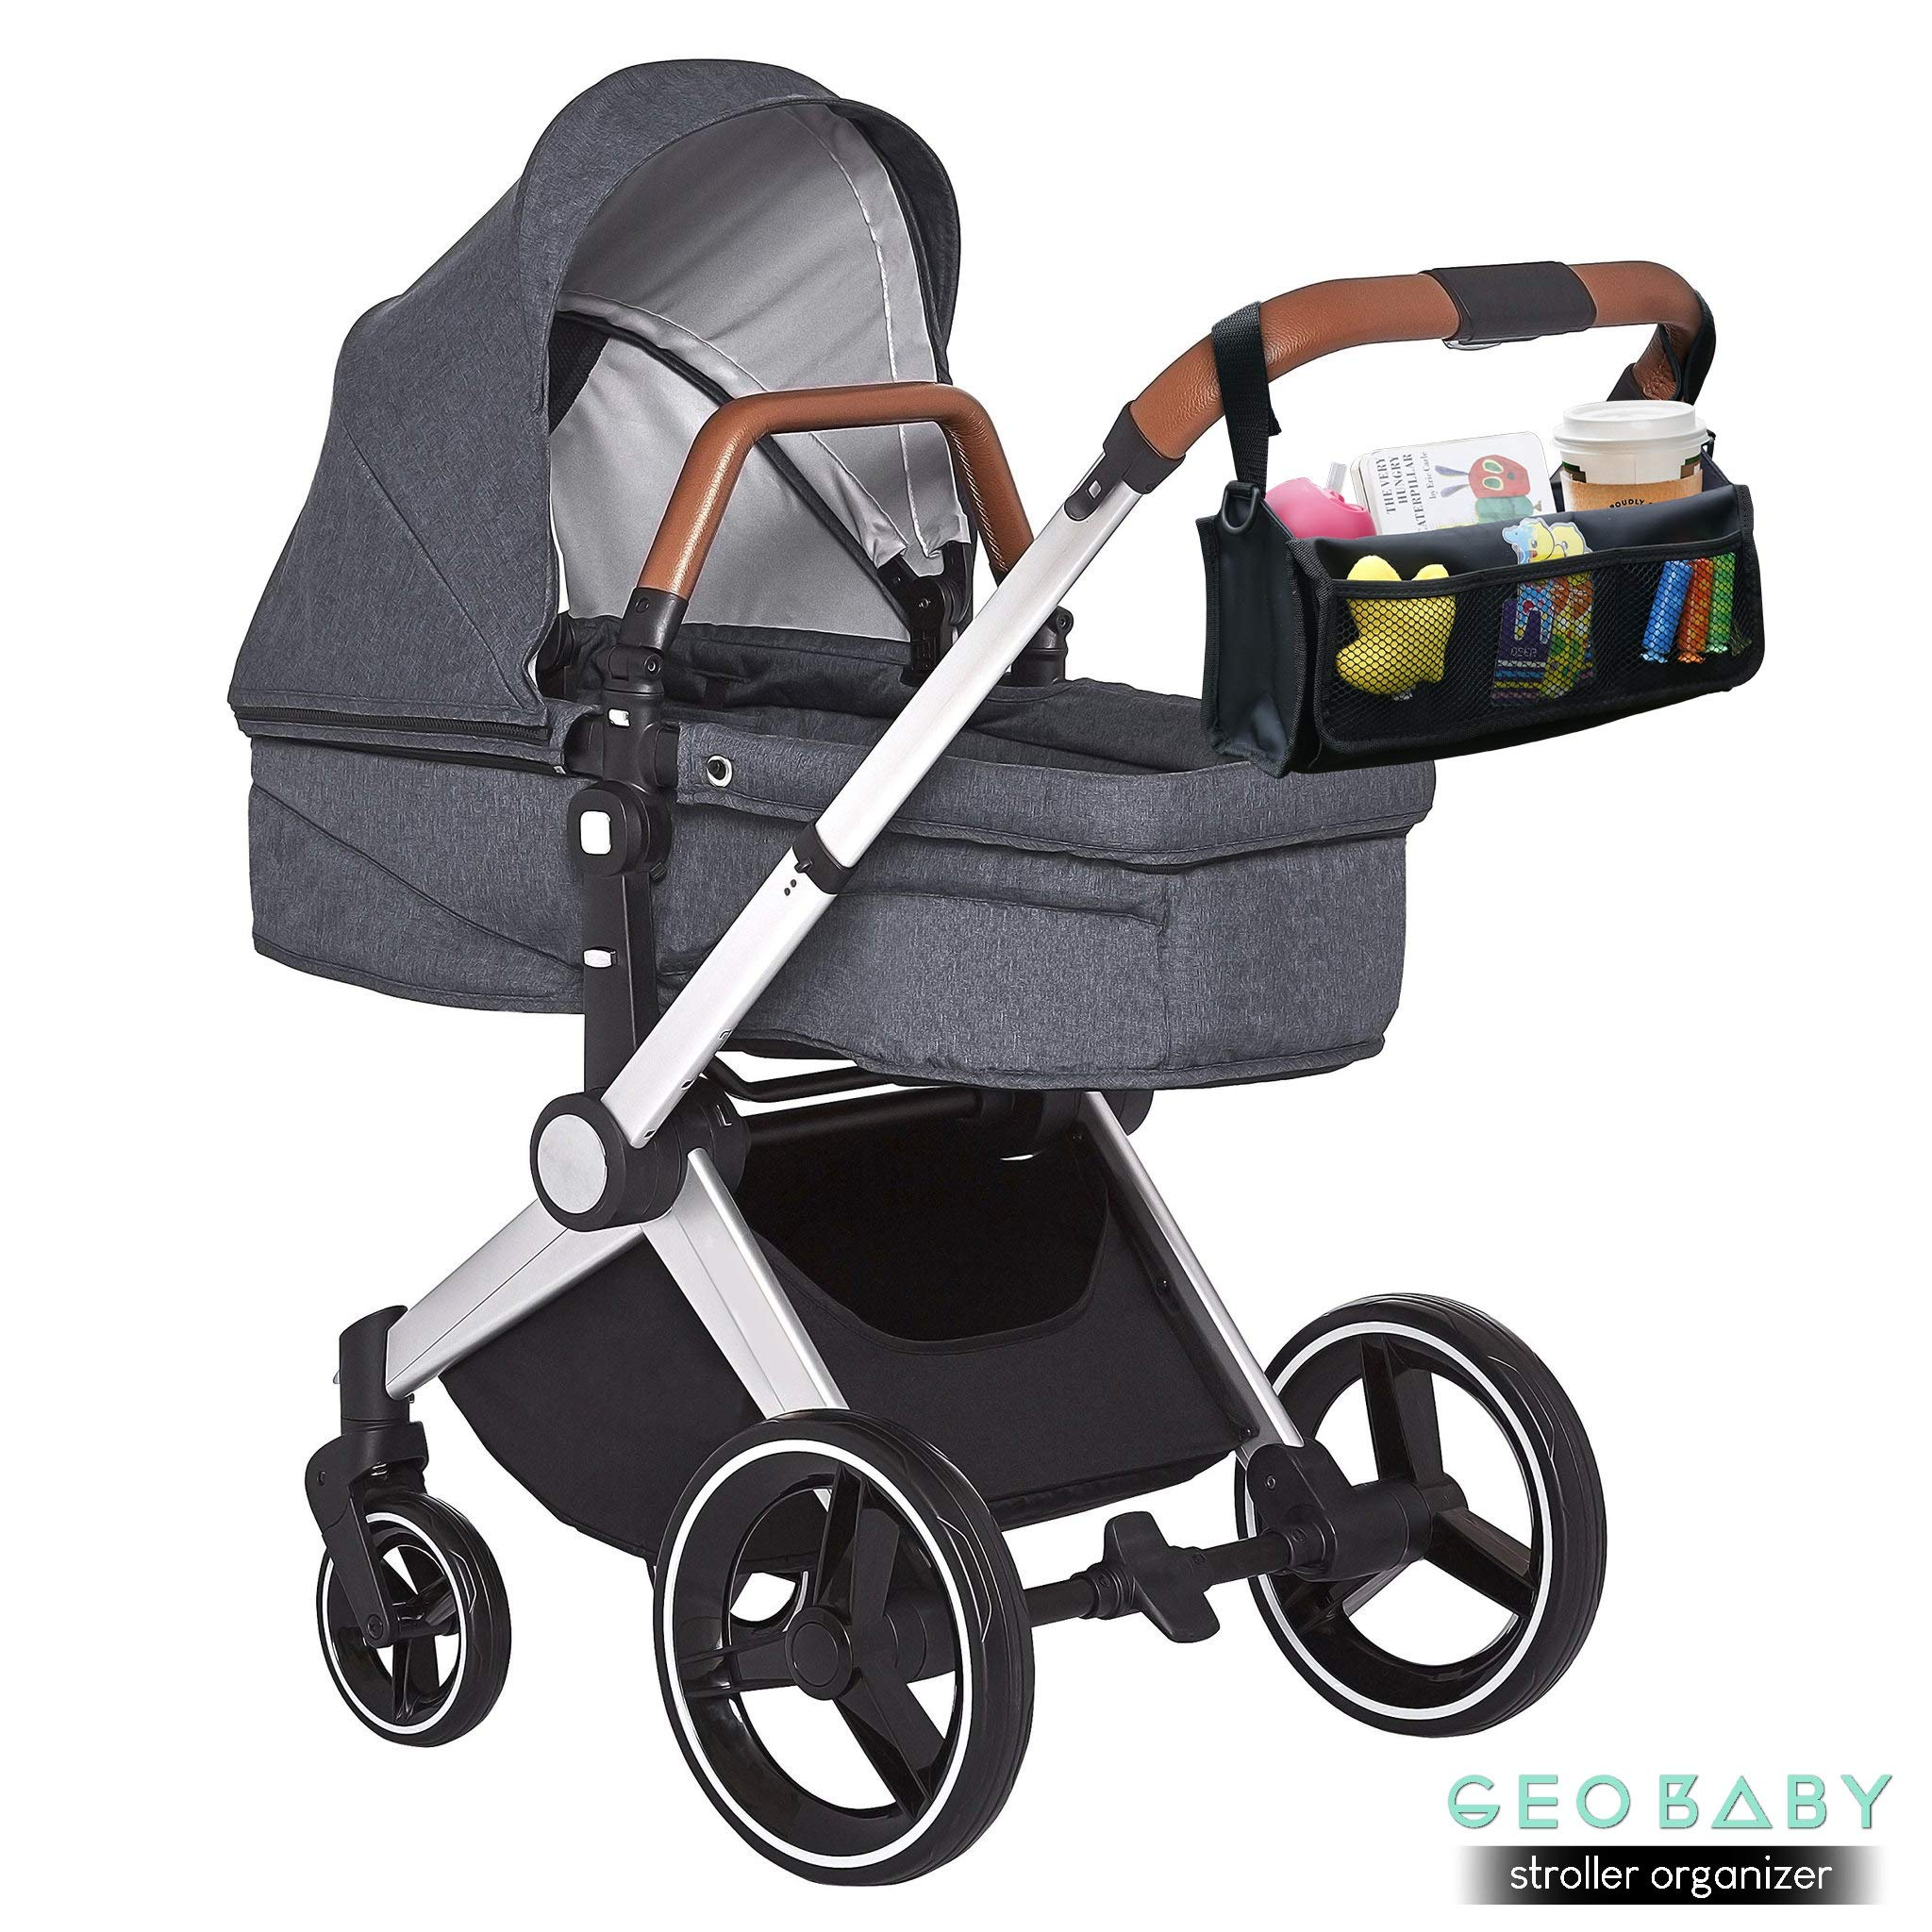 GeoBaby Modern and Universal Extra Storage Stroller Organizer With Cup Holders, Diaper Compartments, Wipes Dispenser, Phone Pockets, Baby Shower Idea by GeoBaby (Image #2)